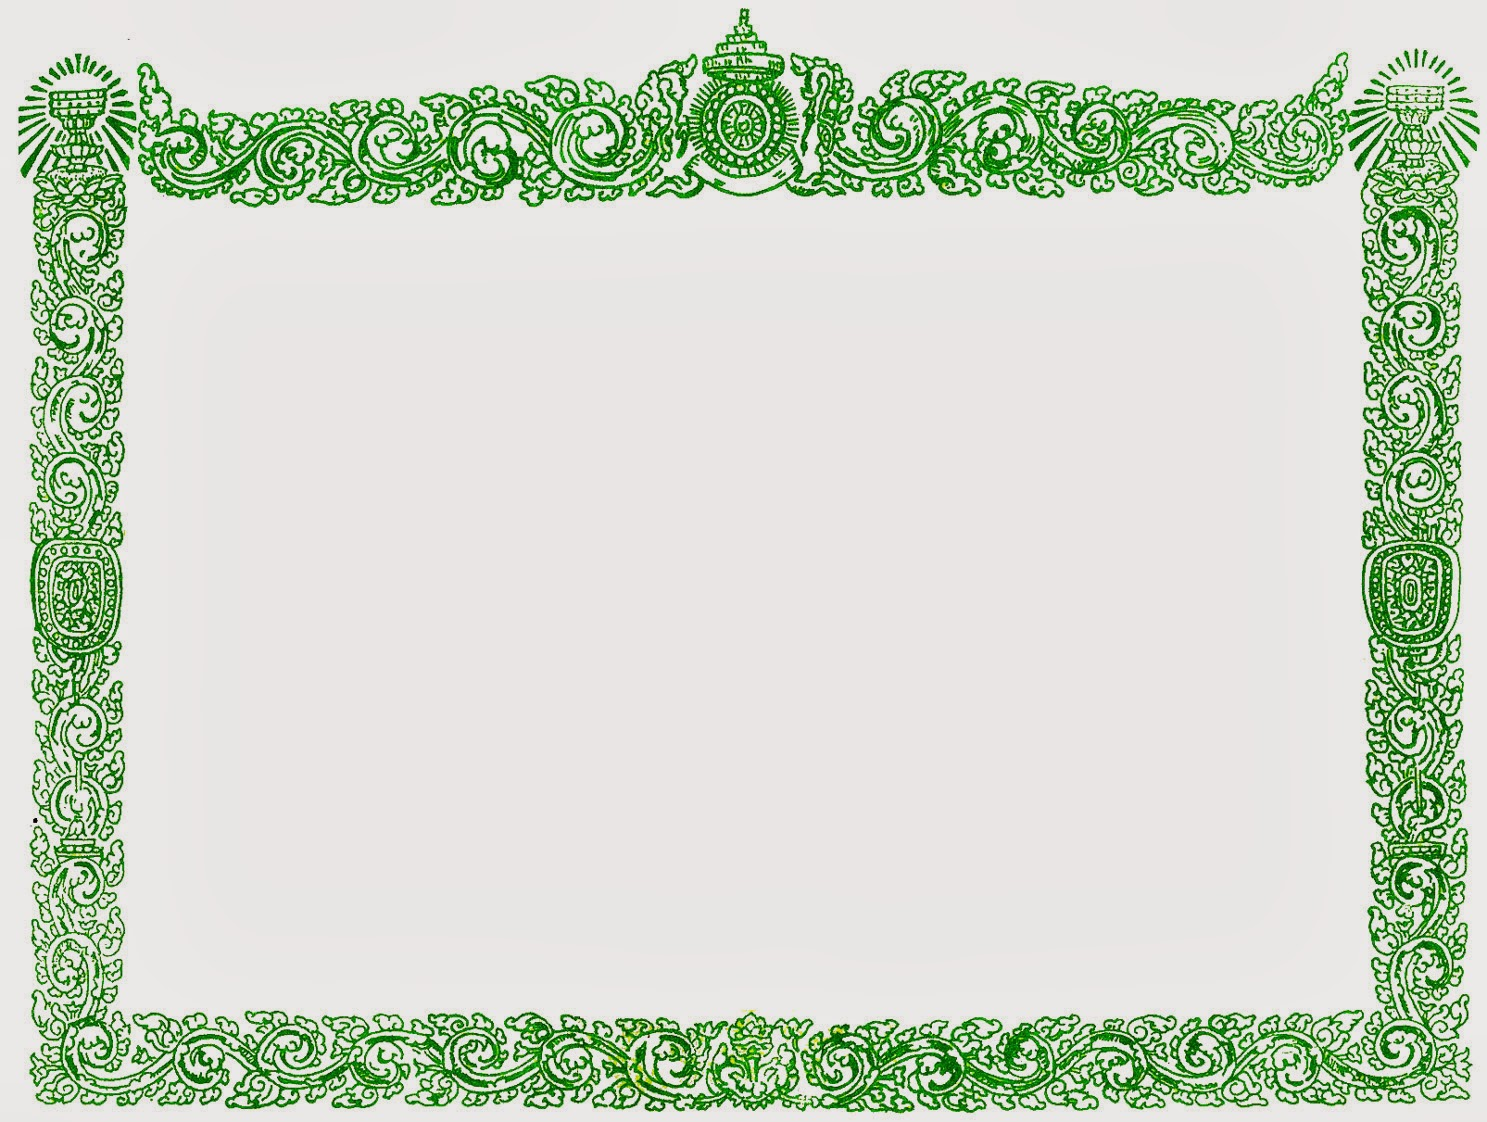 Khmer Vector: Border Frame for Certificate (Kback Khmer